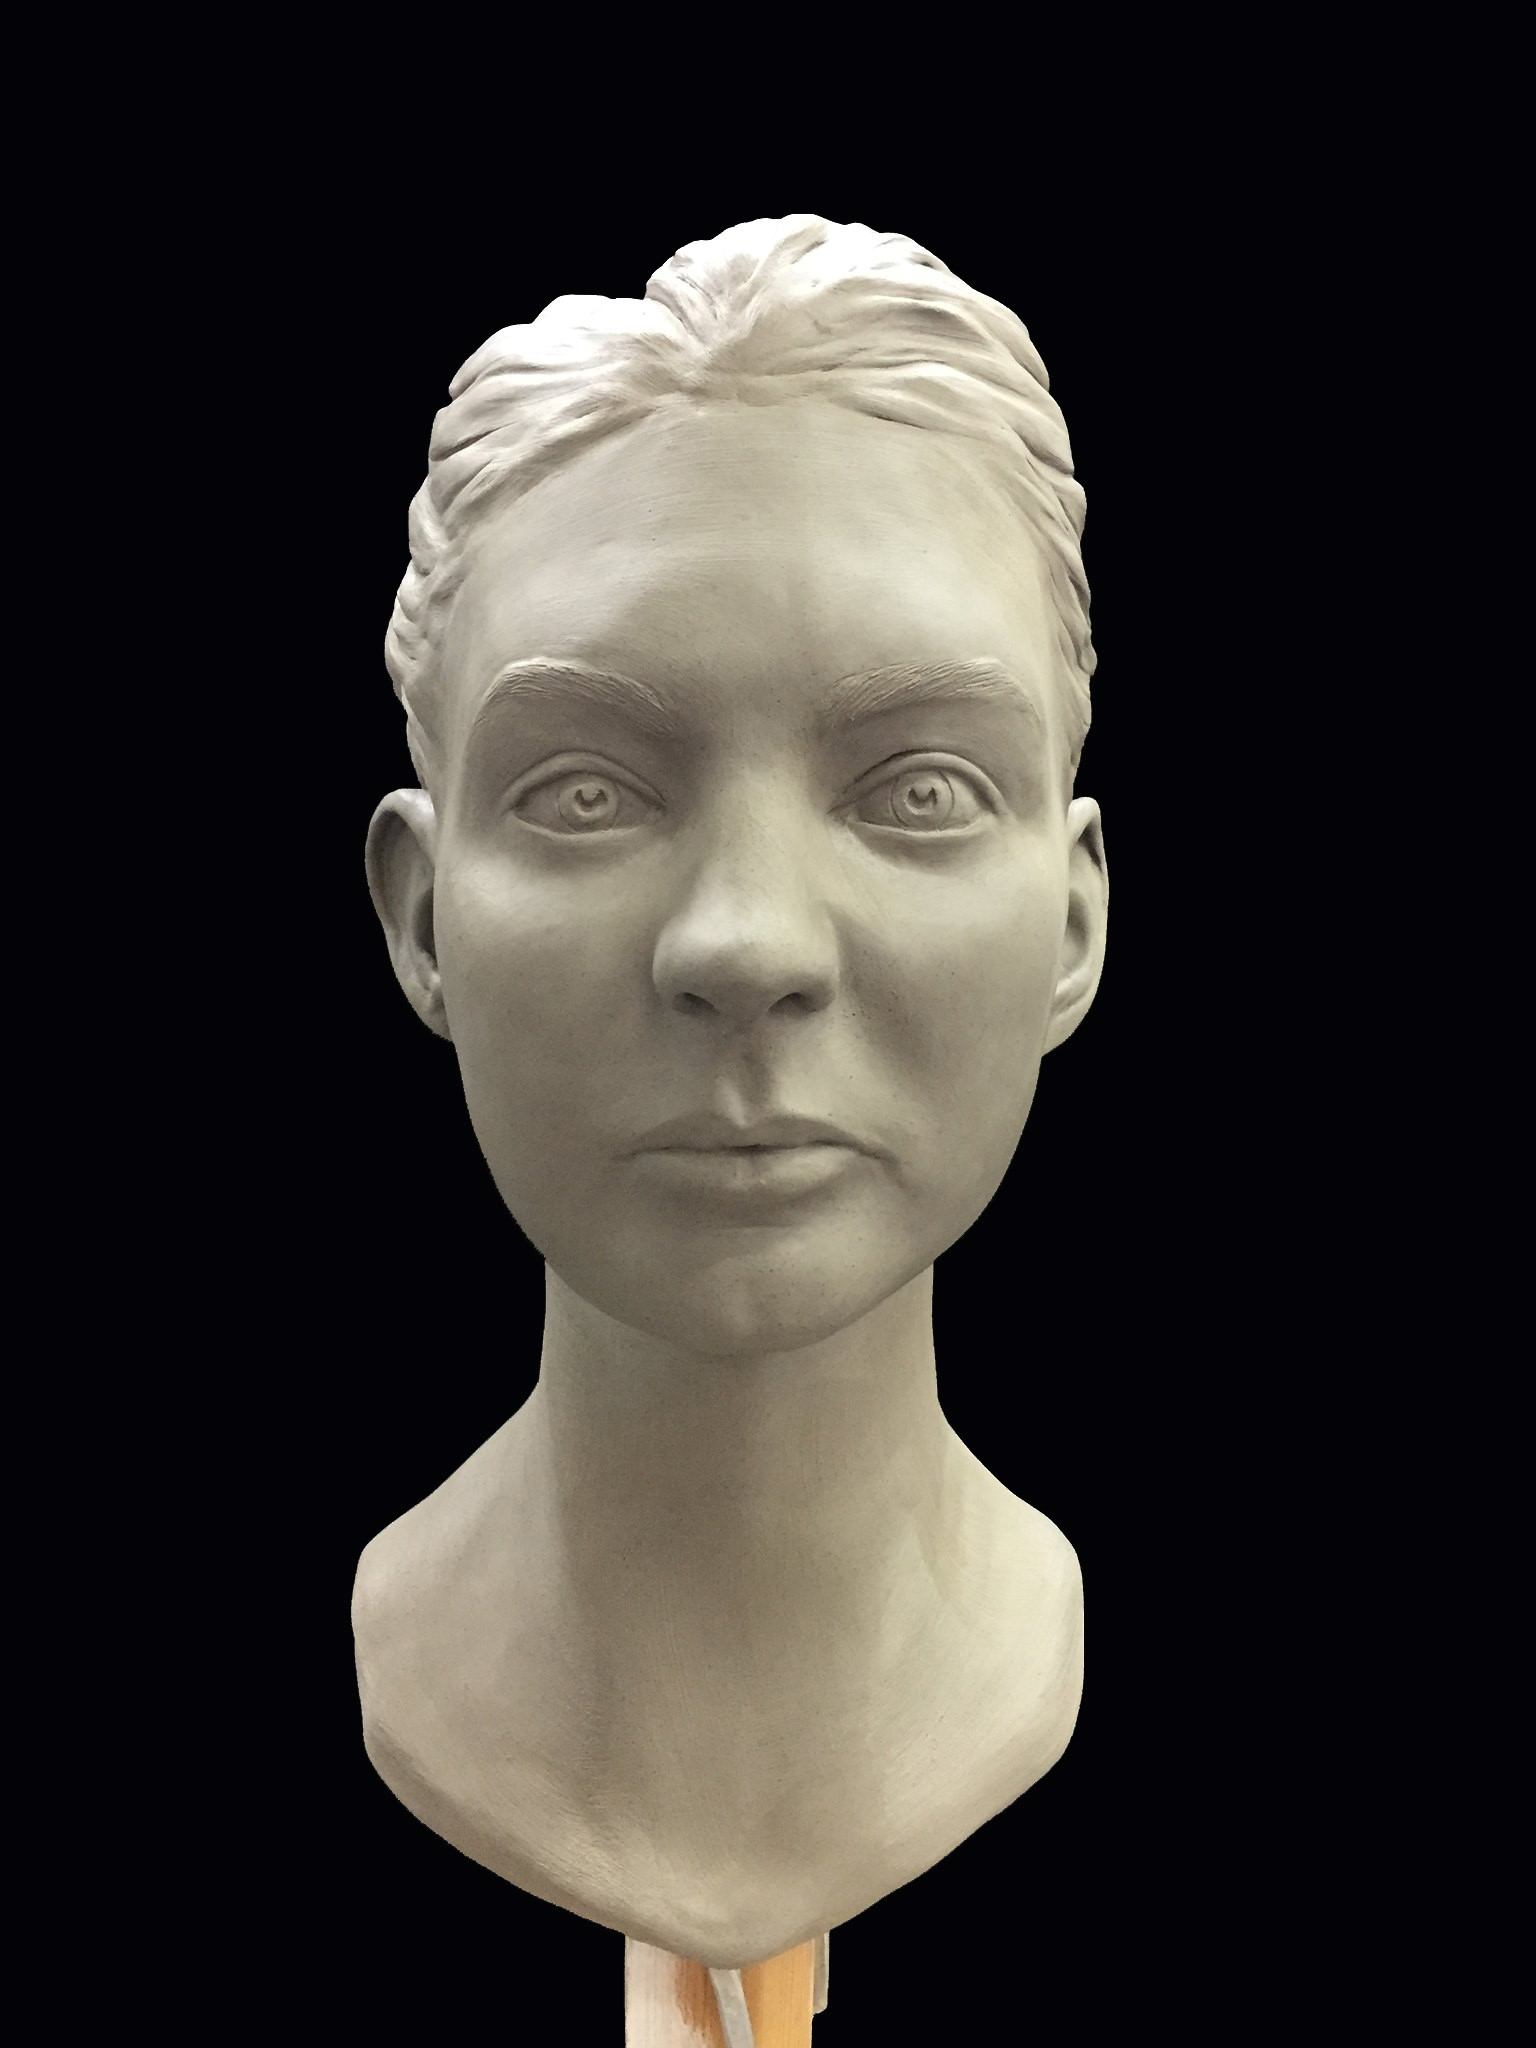 Sculpture by Emily Betts